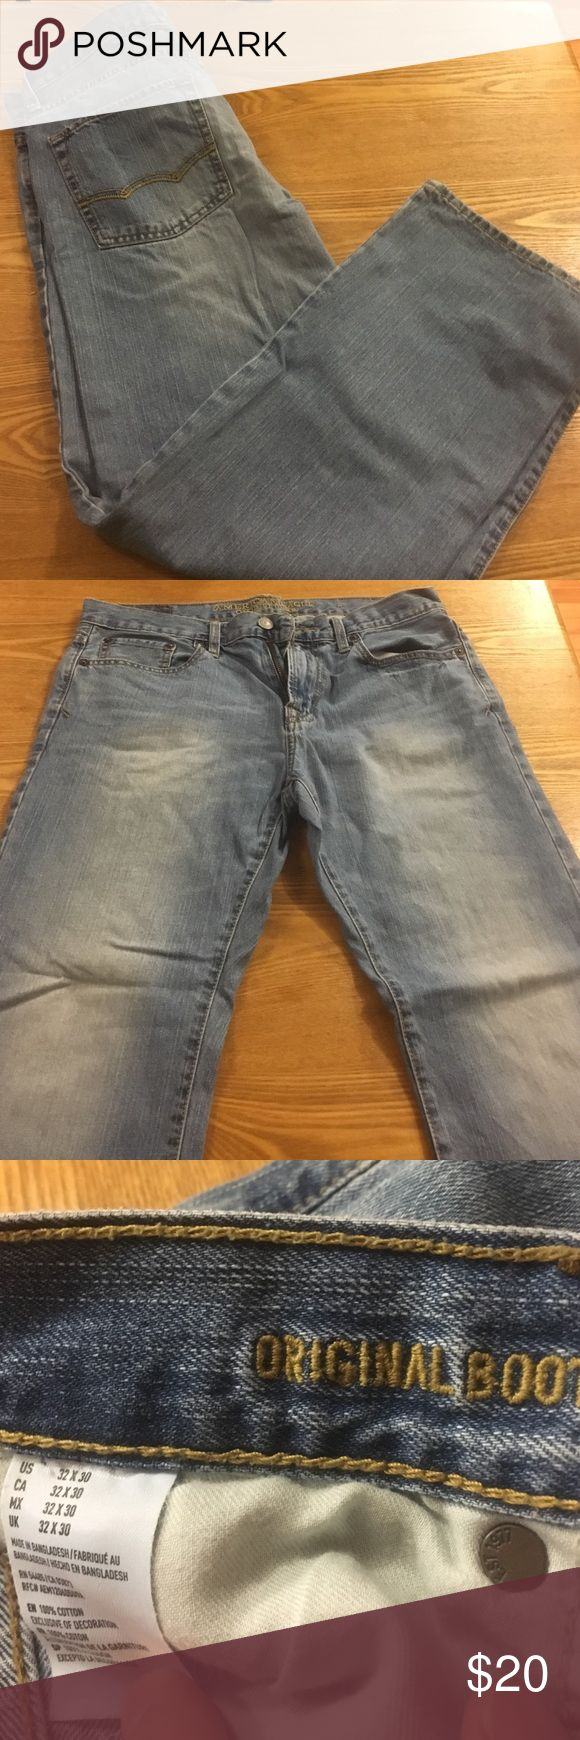 AE men's jeans American eagle original boot men's jeans. Size 32/30. Worms 1-2 times for a few hours. Husband not a fan of the fit. Fabulous condition. American Eagle Outfitters Jeans Bootcut